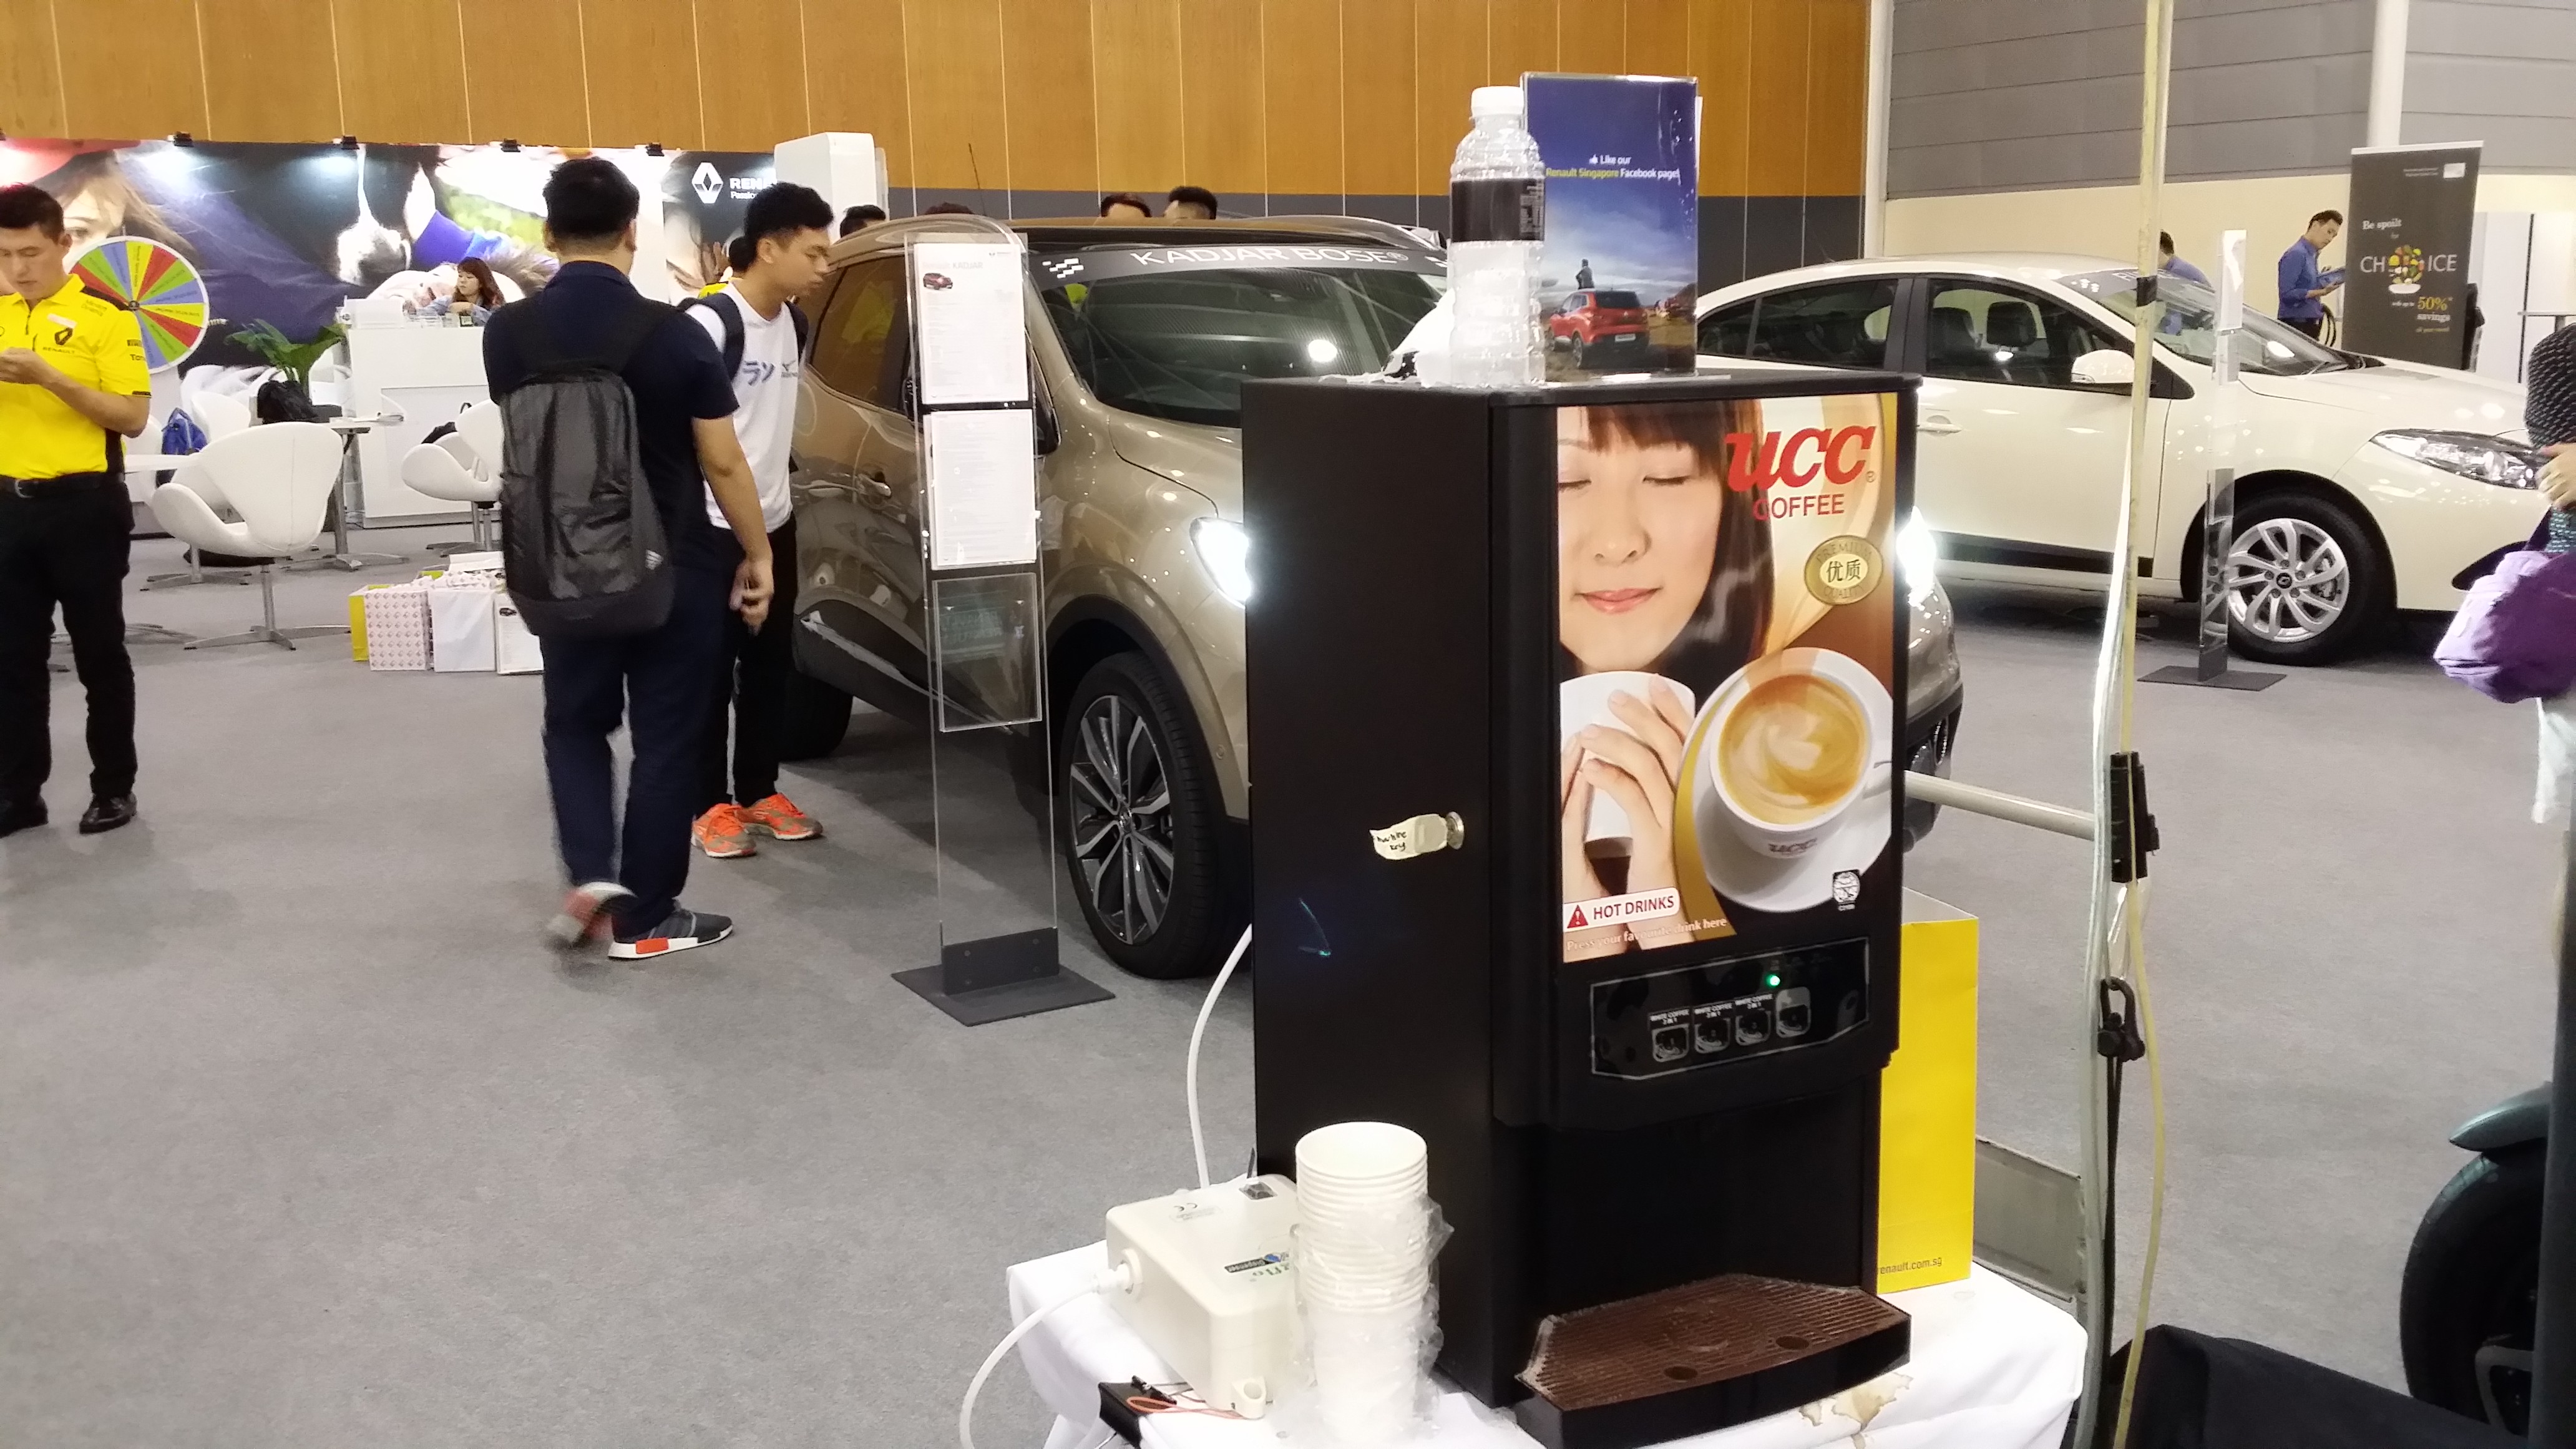 UCC Coffee Machine Rental - Car Show at Singapore Expo